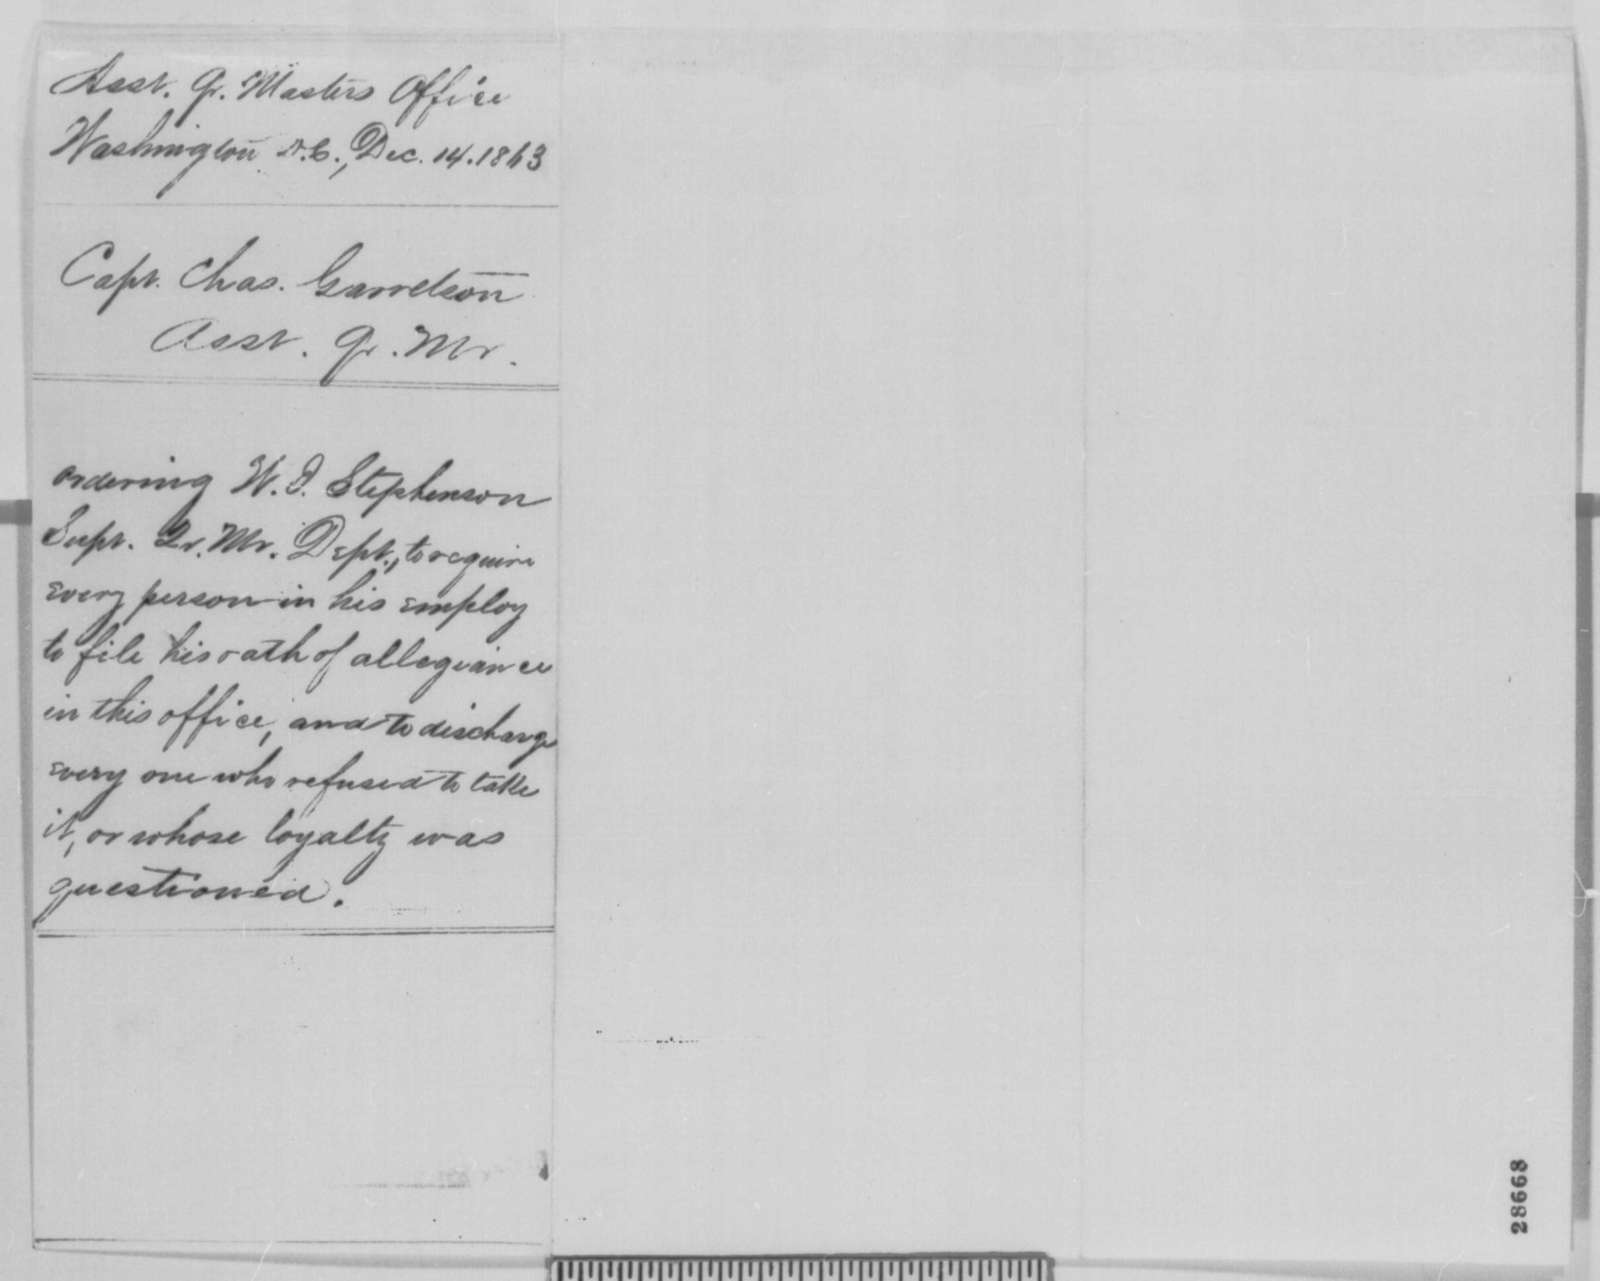 Charles Garretson to W. J. Stephenson, Monday, December 14, 1863  (Loyalty oath for employees in the quartermaster department)